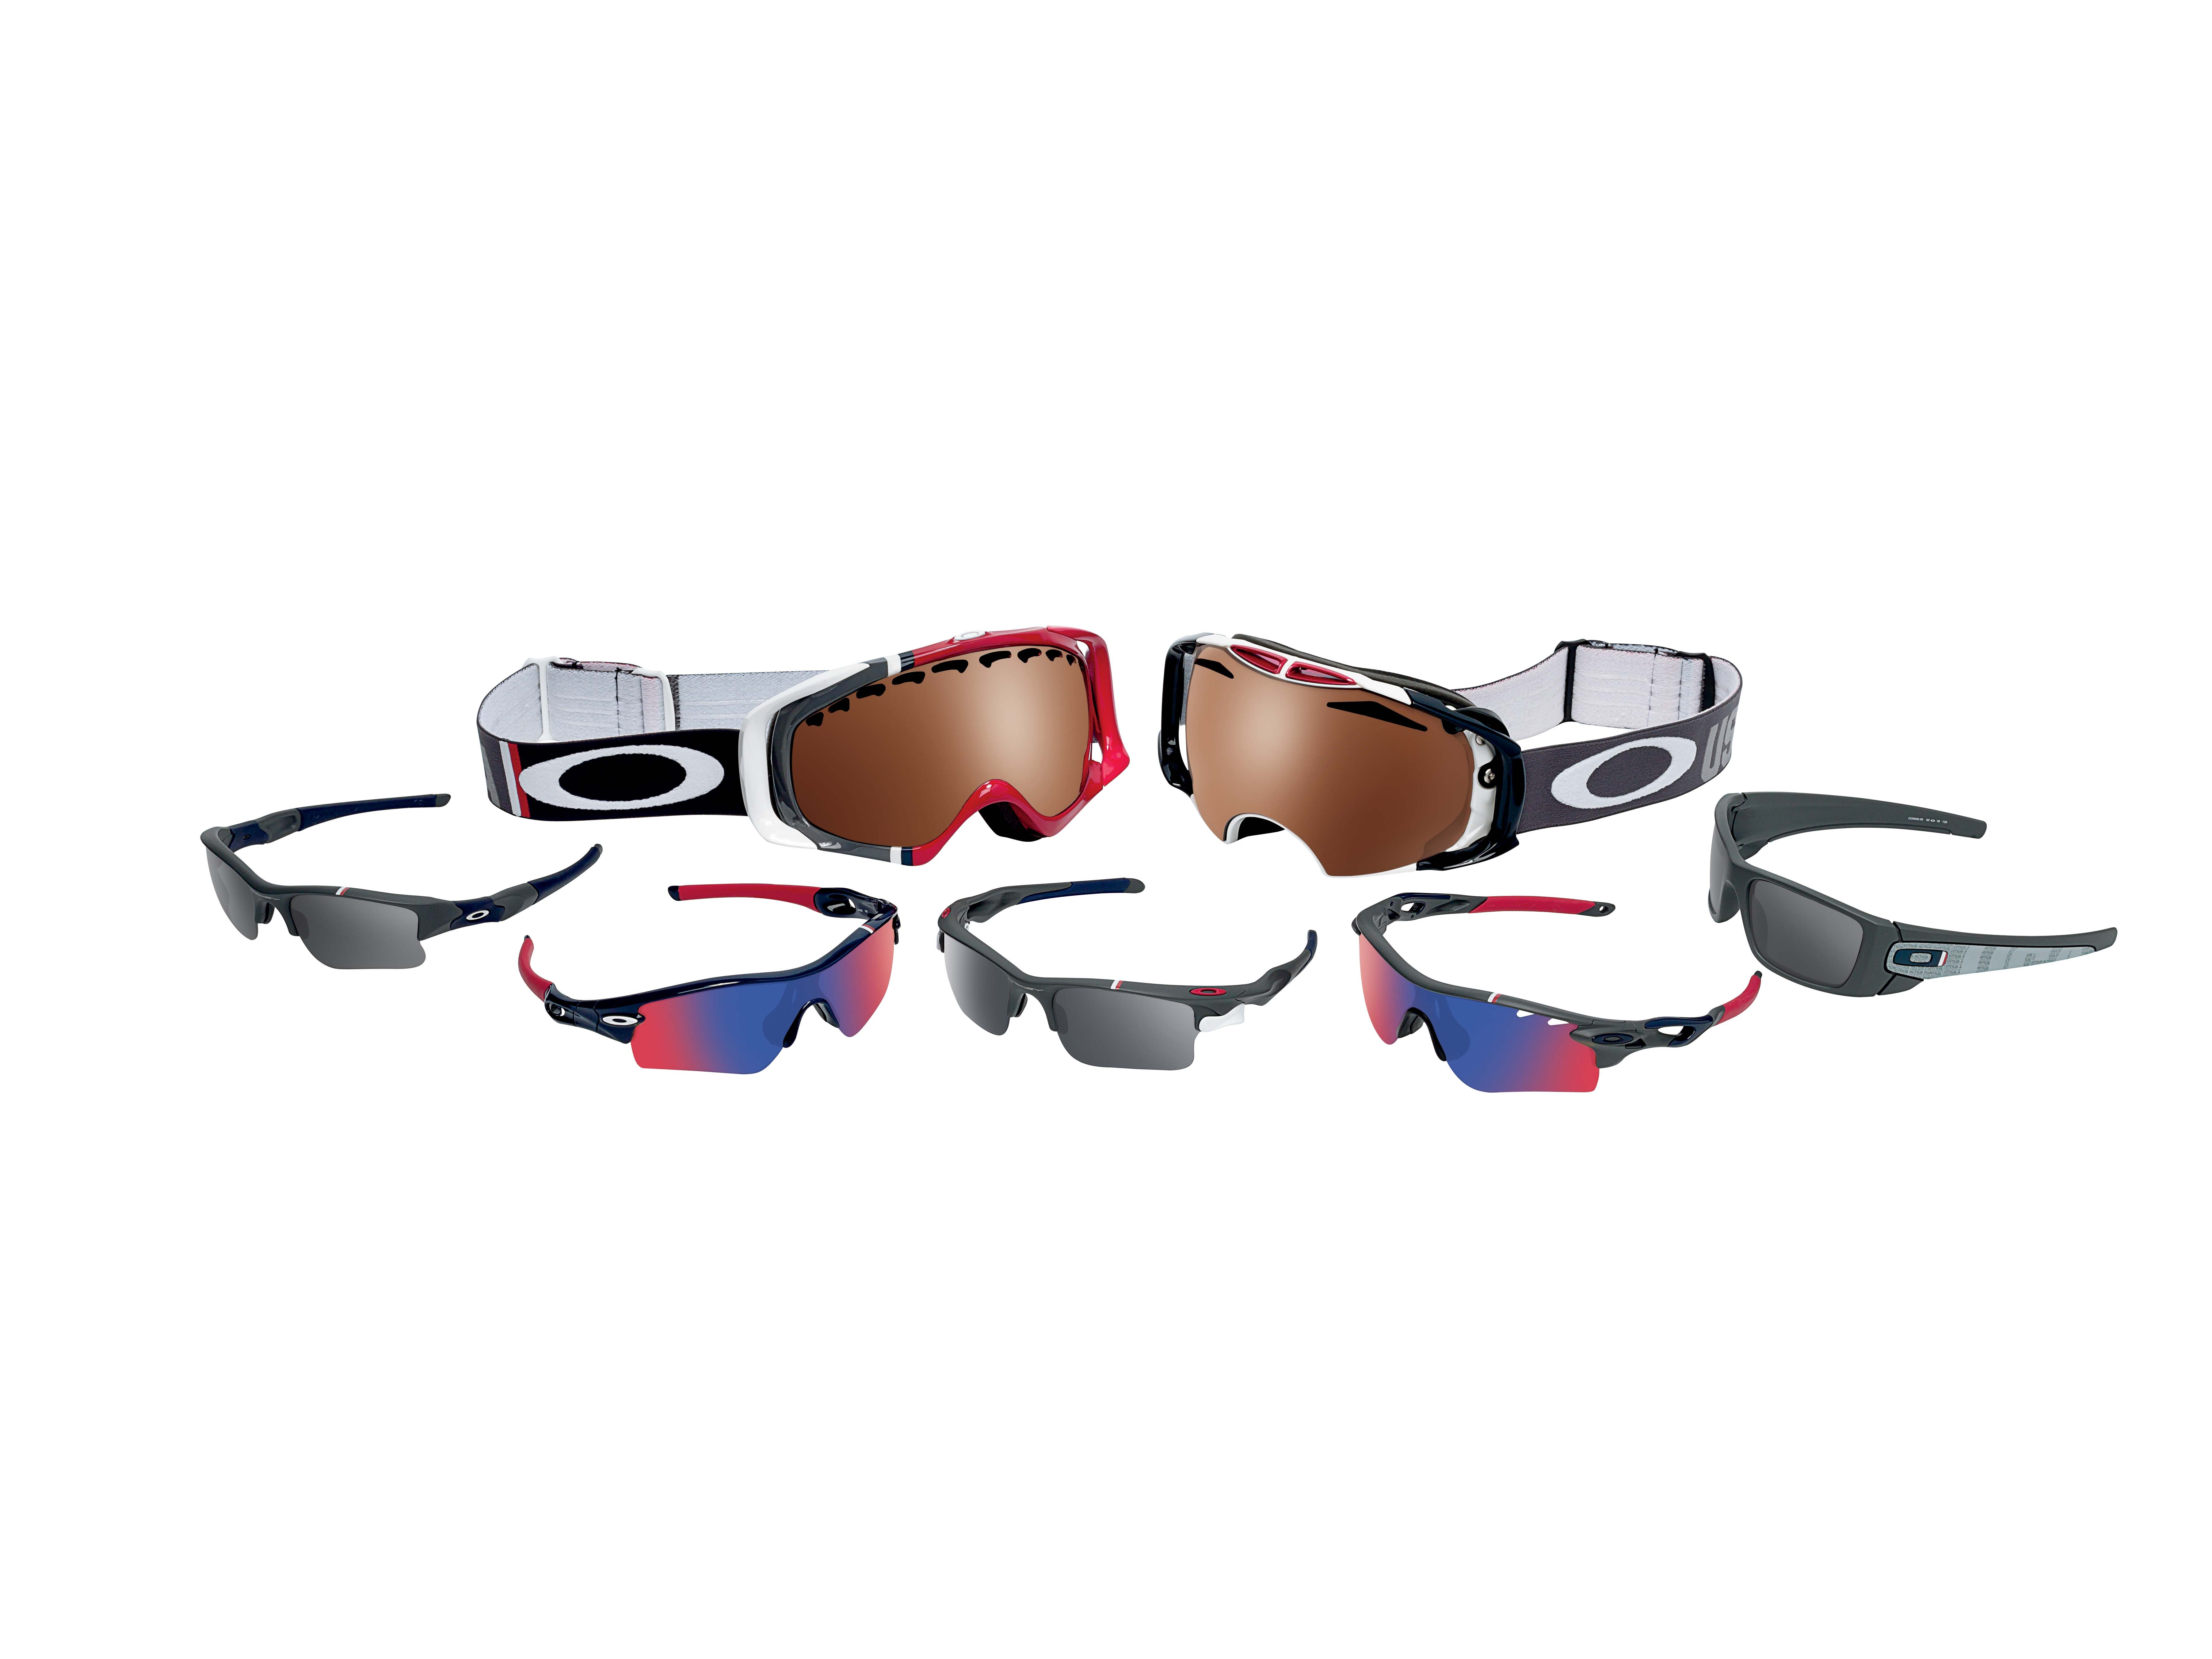 f8eac660a1 U.S. Olympic Committee and Oakley Expand Team USA® Collection ...